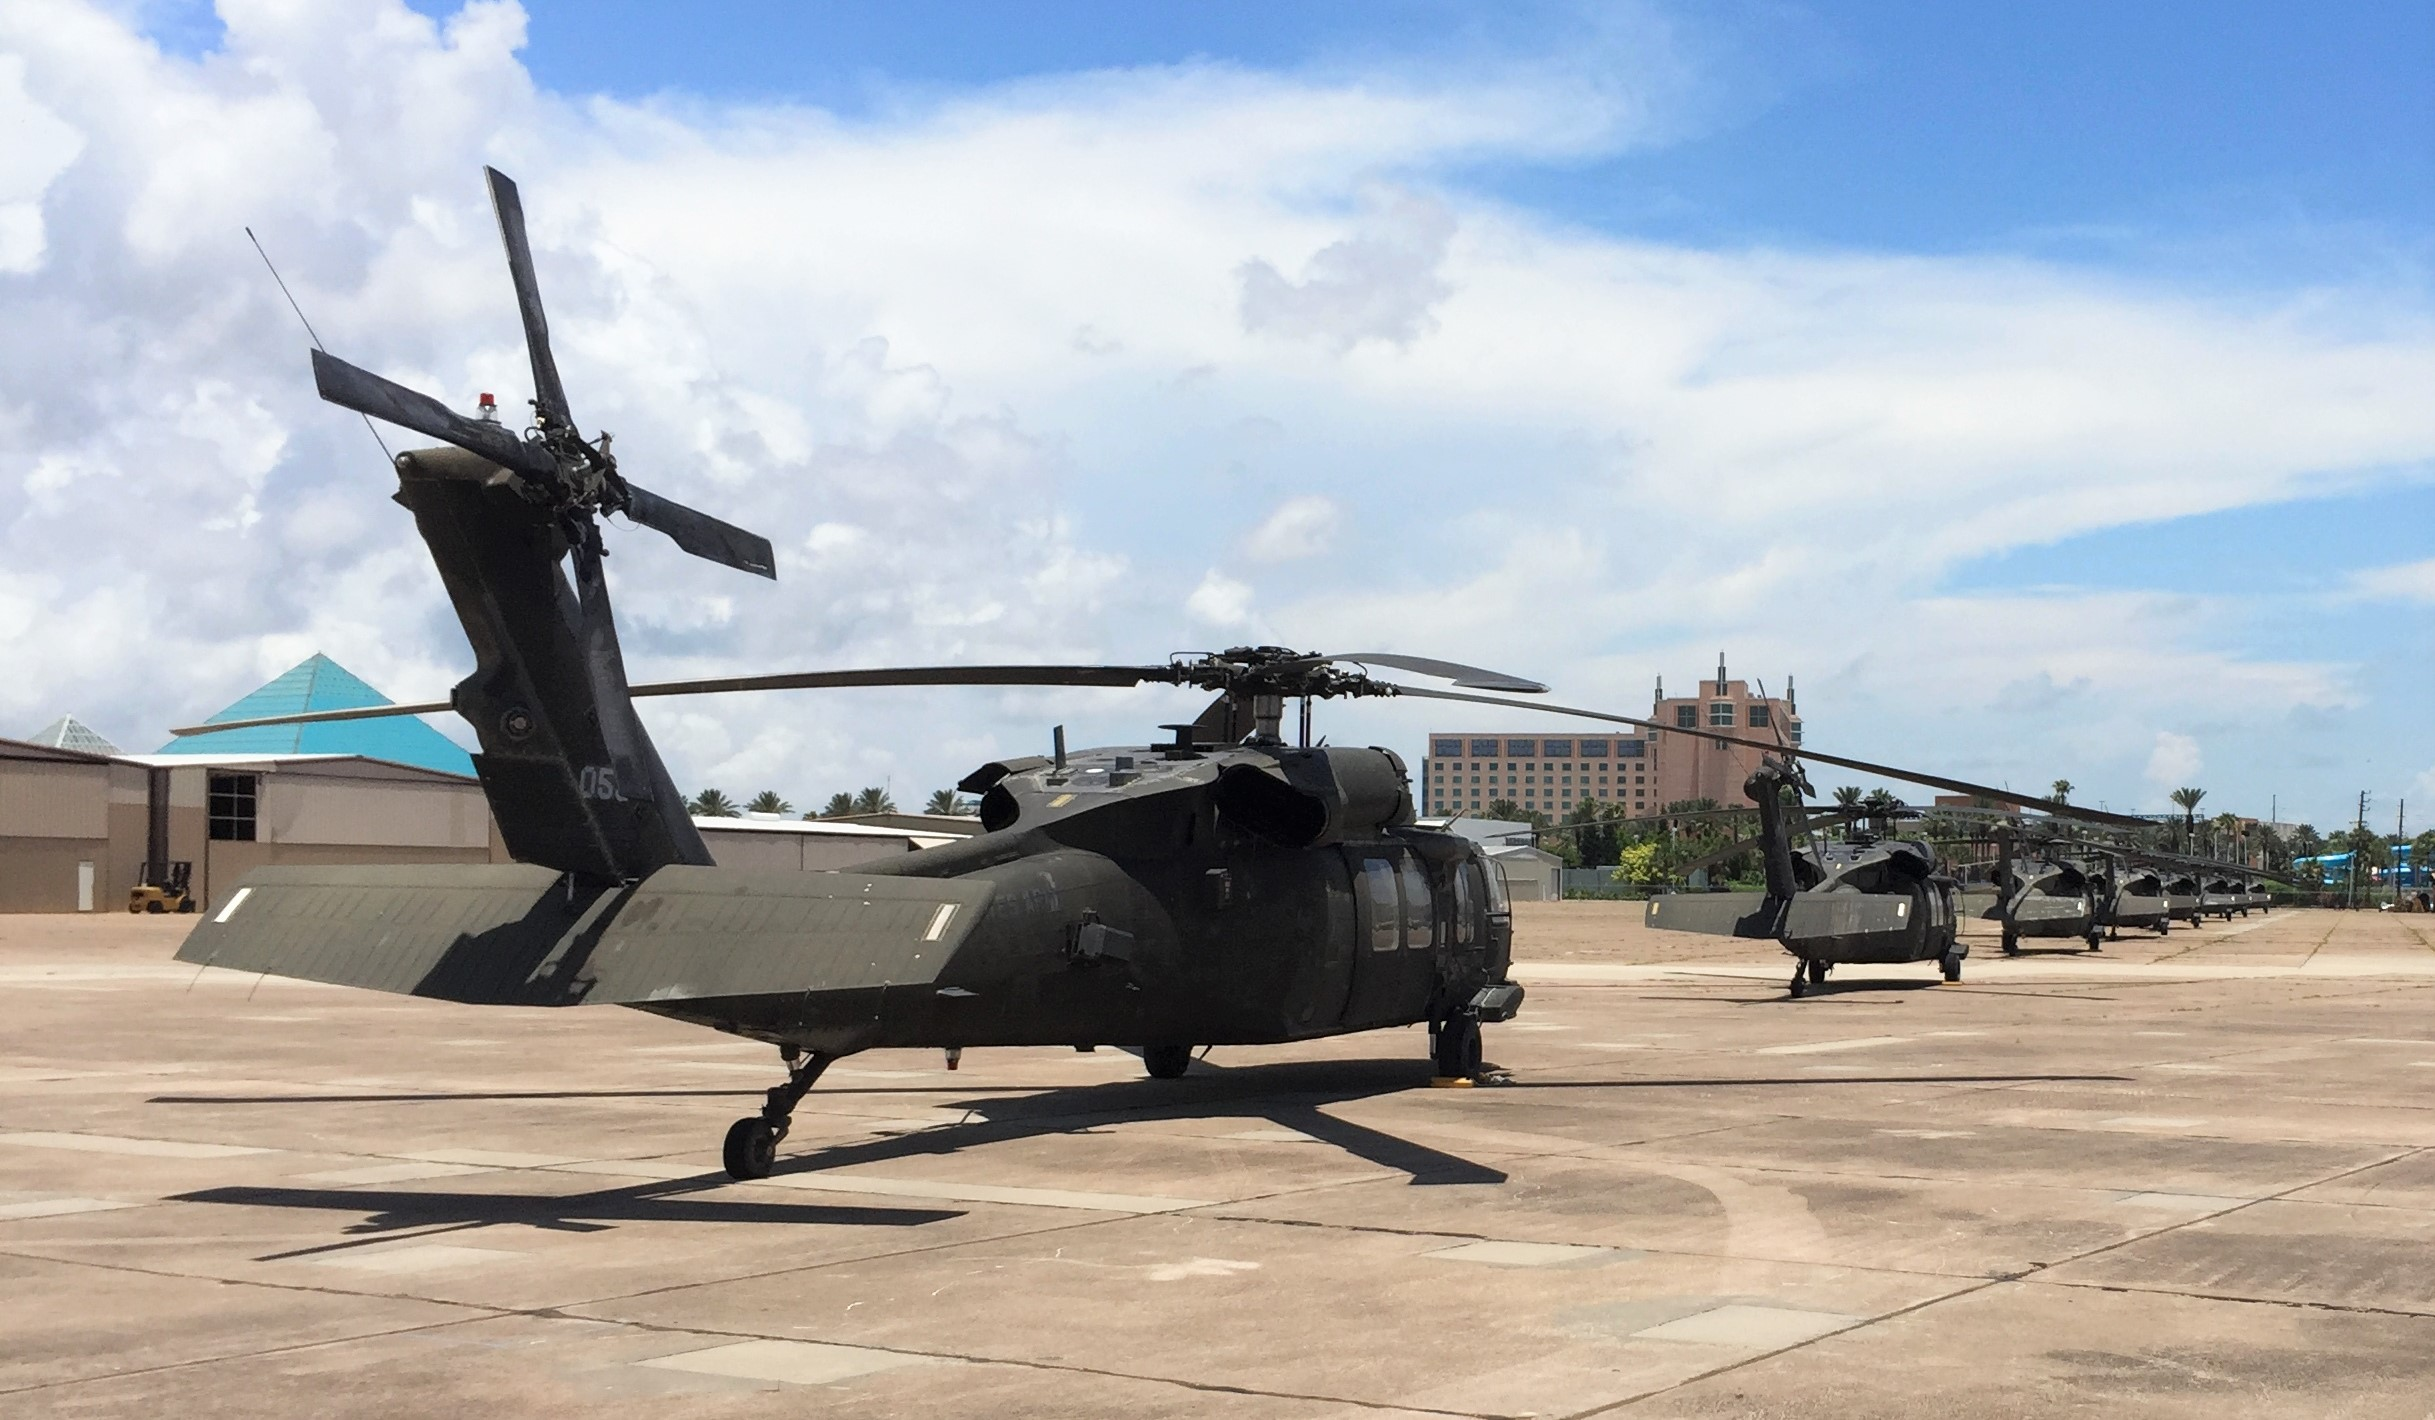 Army Blackhawk Helicopters